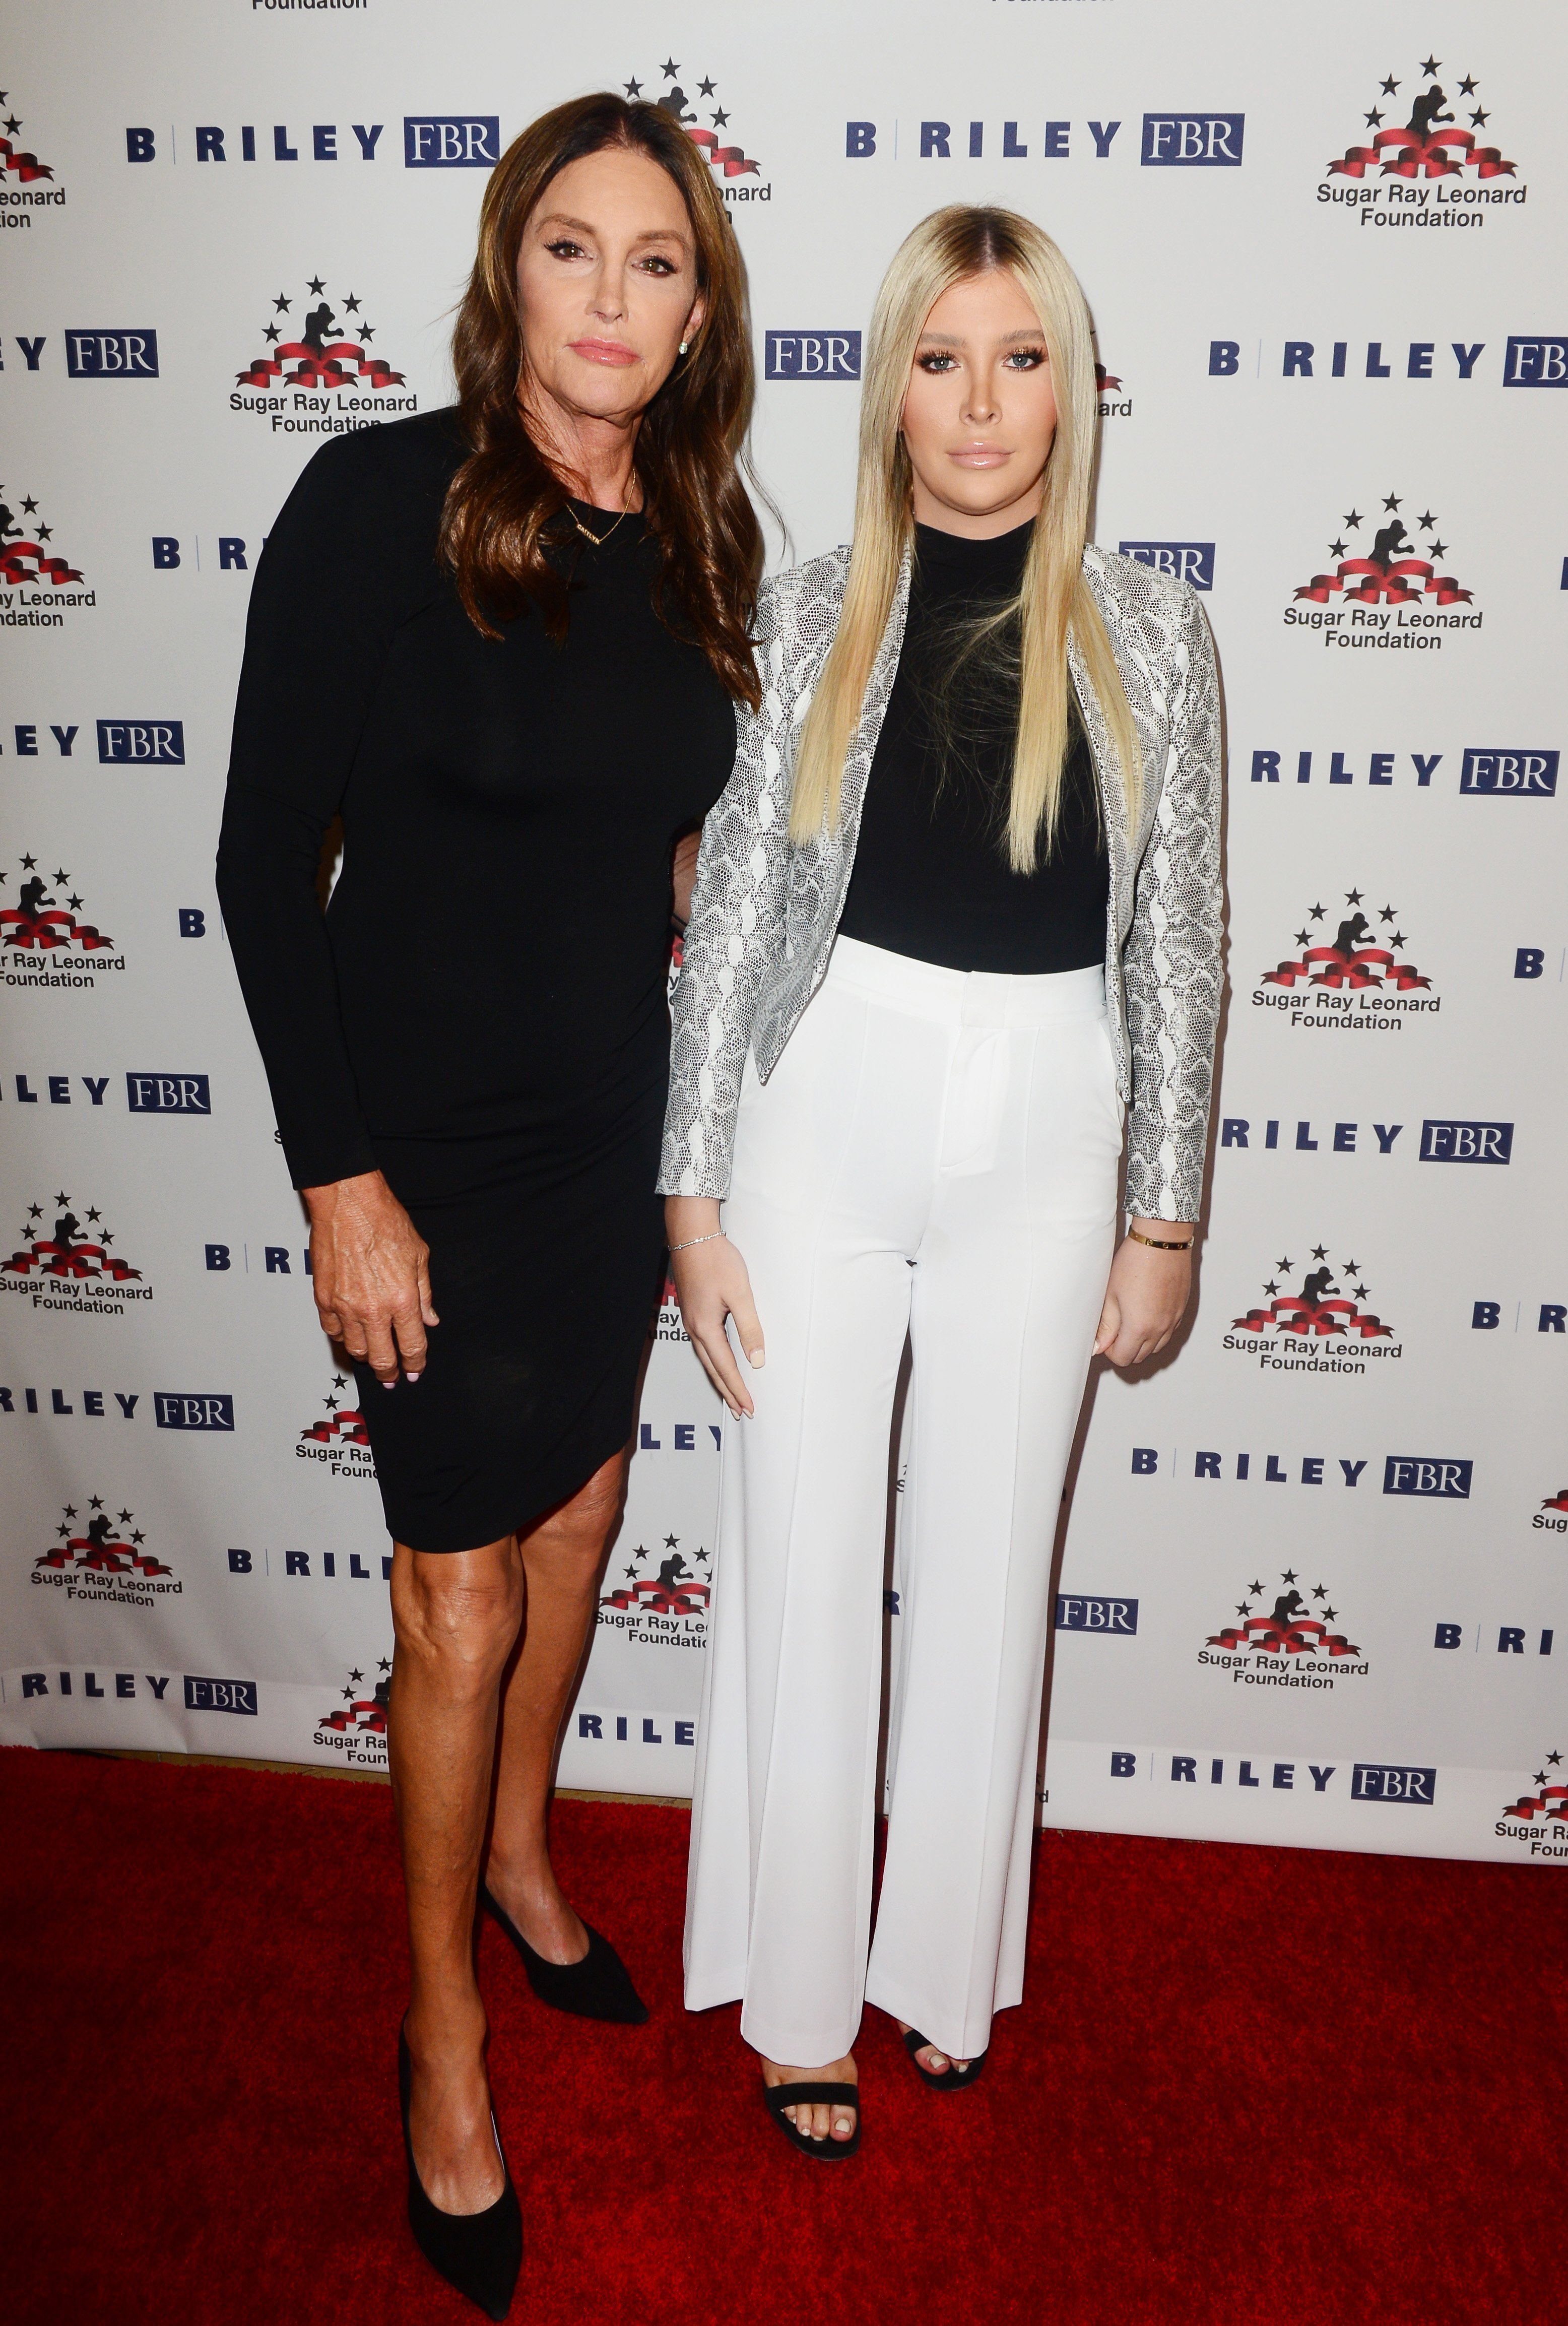 Caitlyn Jenner and Sophia Hutchins attend the 10th Annual Big Fighters, Big Cause Charity Boxing Night in Beverly Hills in May 2019 | Photo: Getty Images